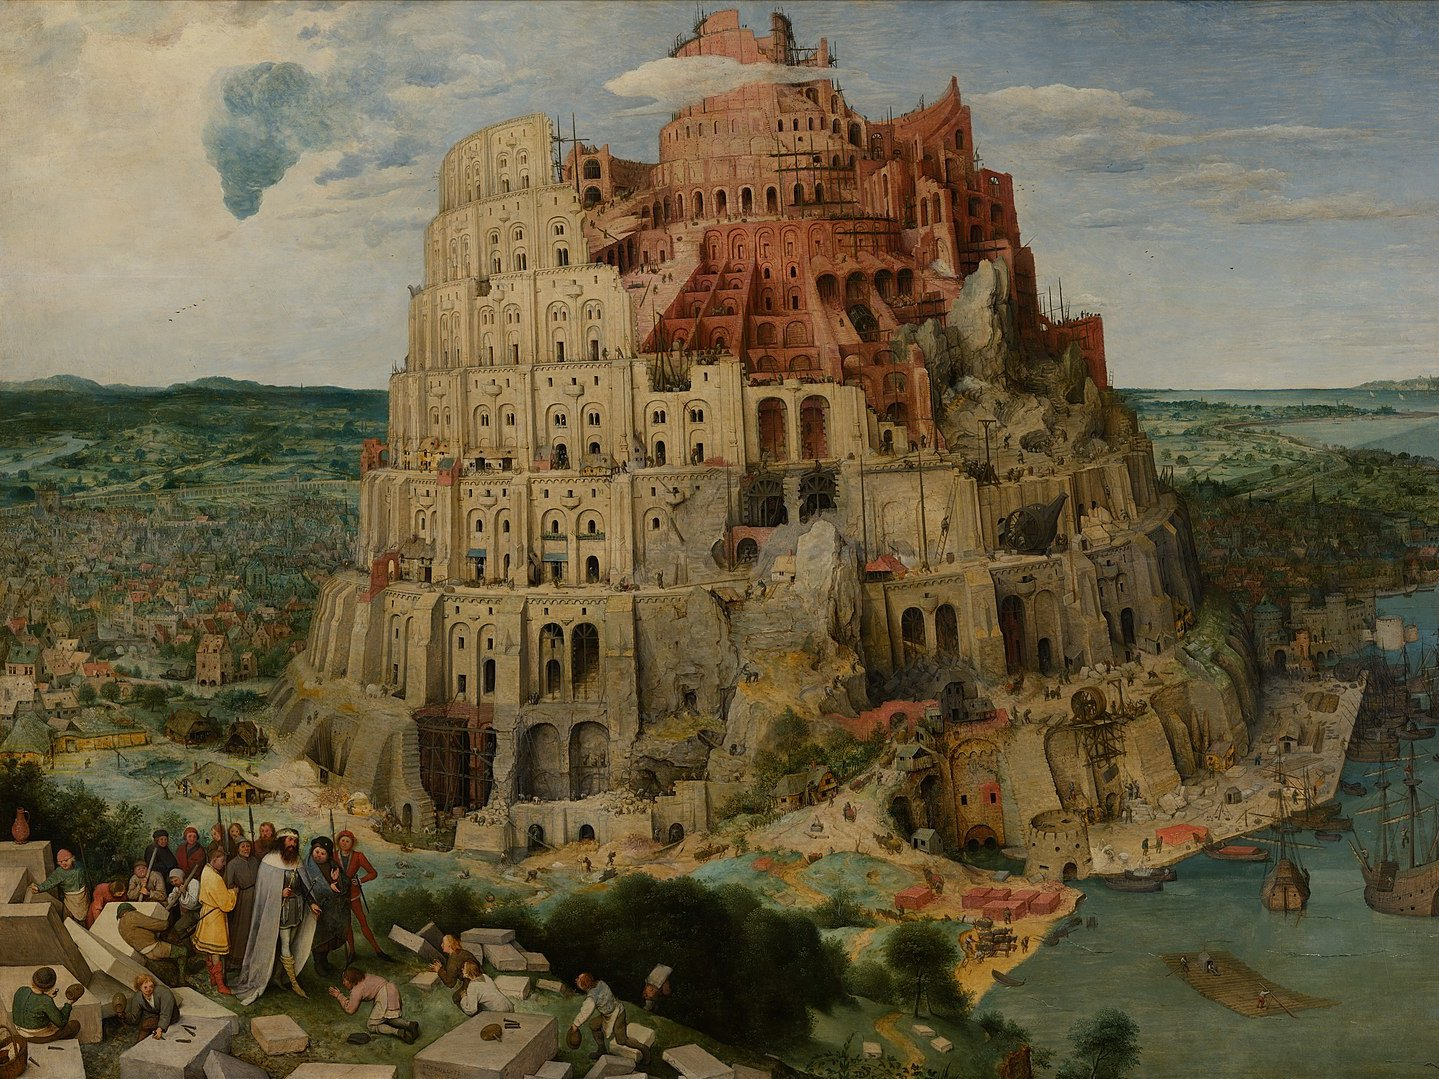 Pieter Bruegel the Elder (c. 1525/1530–1569): The Tower of Babel, c. 1563, oil on panel, Kunsthistorisches Museum, Vienna (image from Google Art Project via Wikimedia)